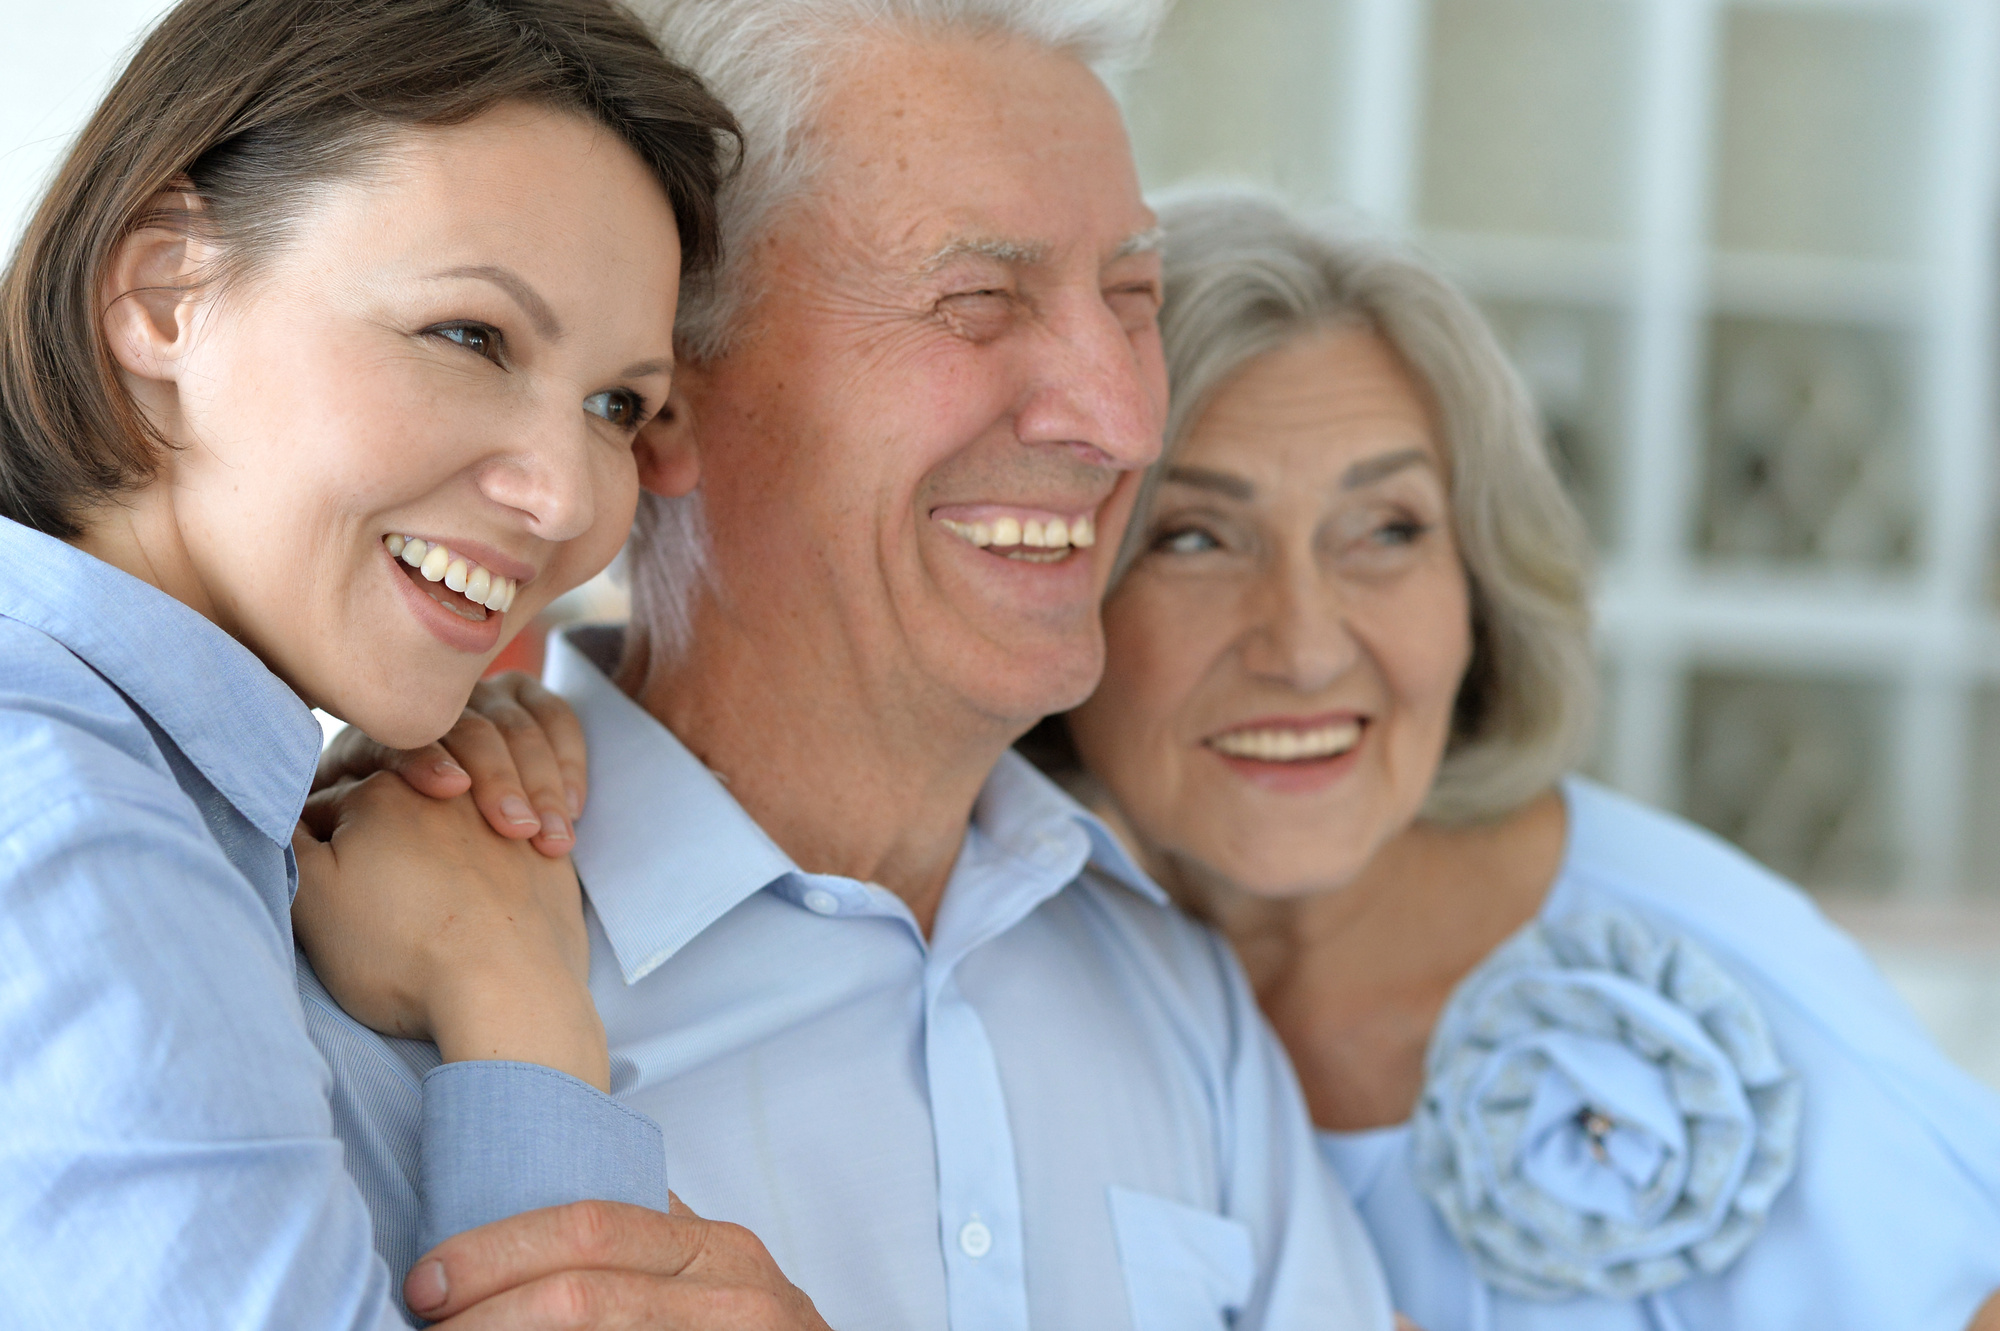 Things You Should Know Before Buying a Home Health Care Franchise